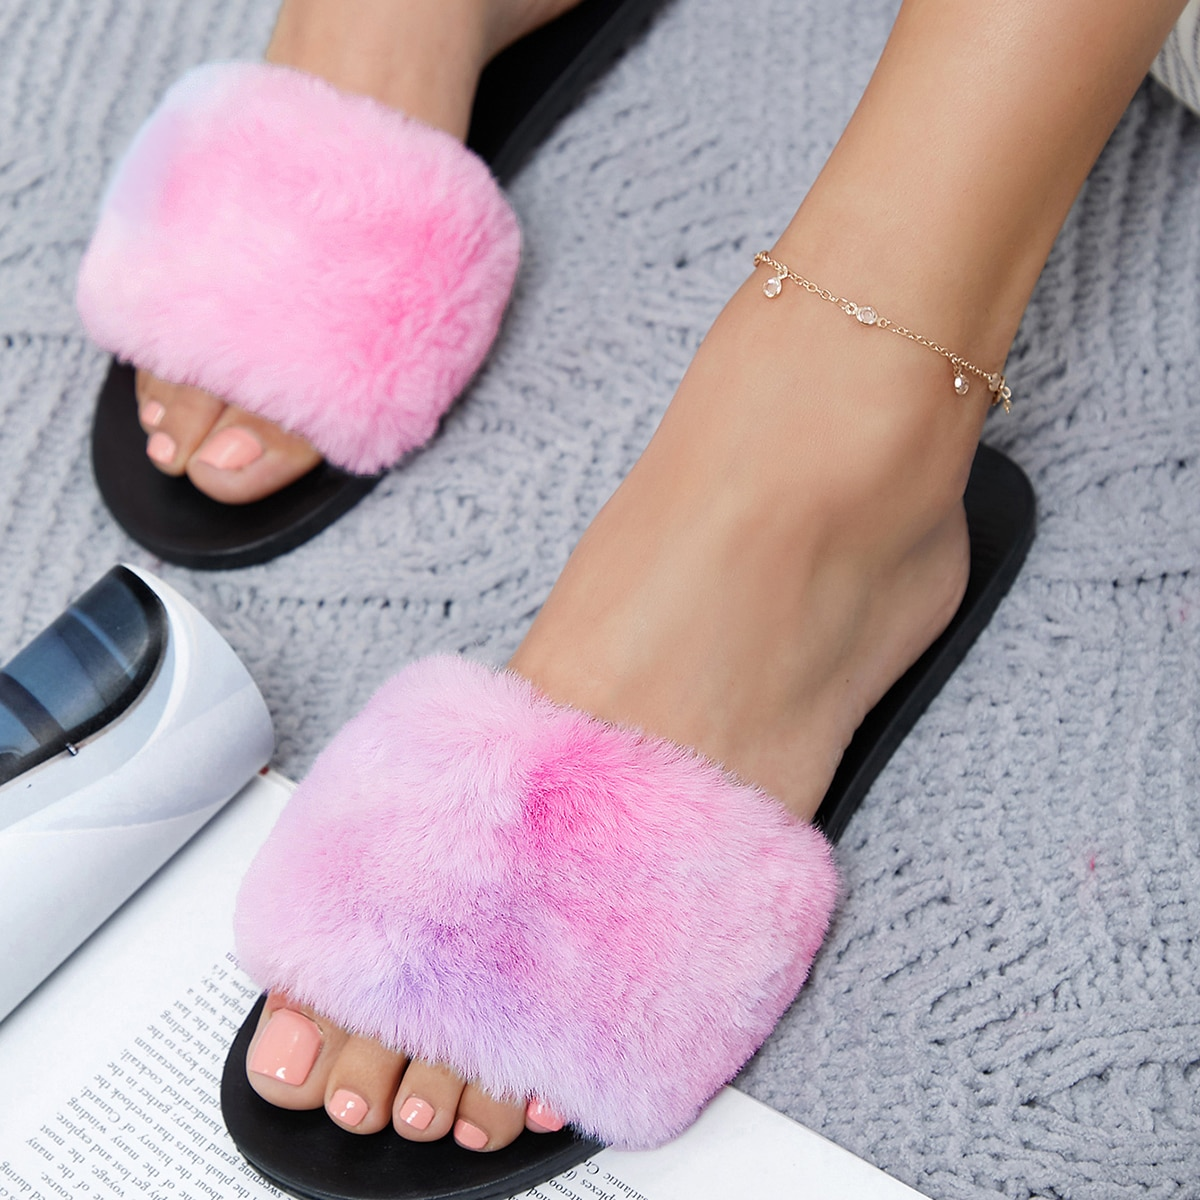 SHEIN / Multicolored Fuzzy Faux Fur Slide Sandals